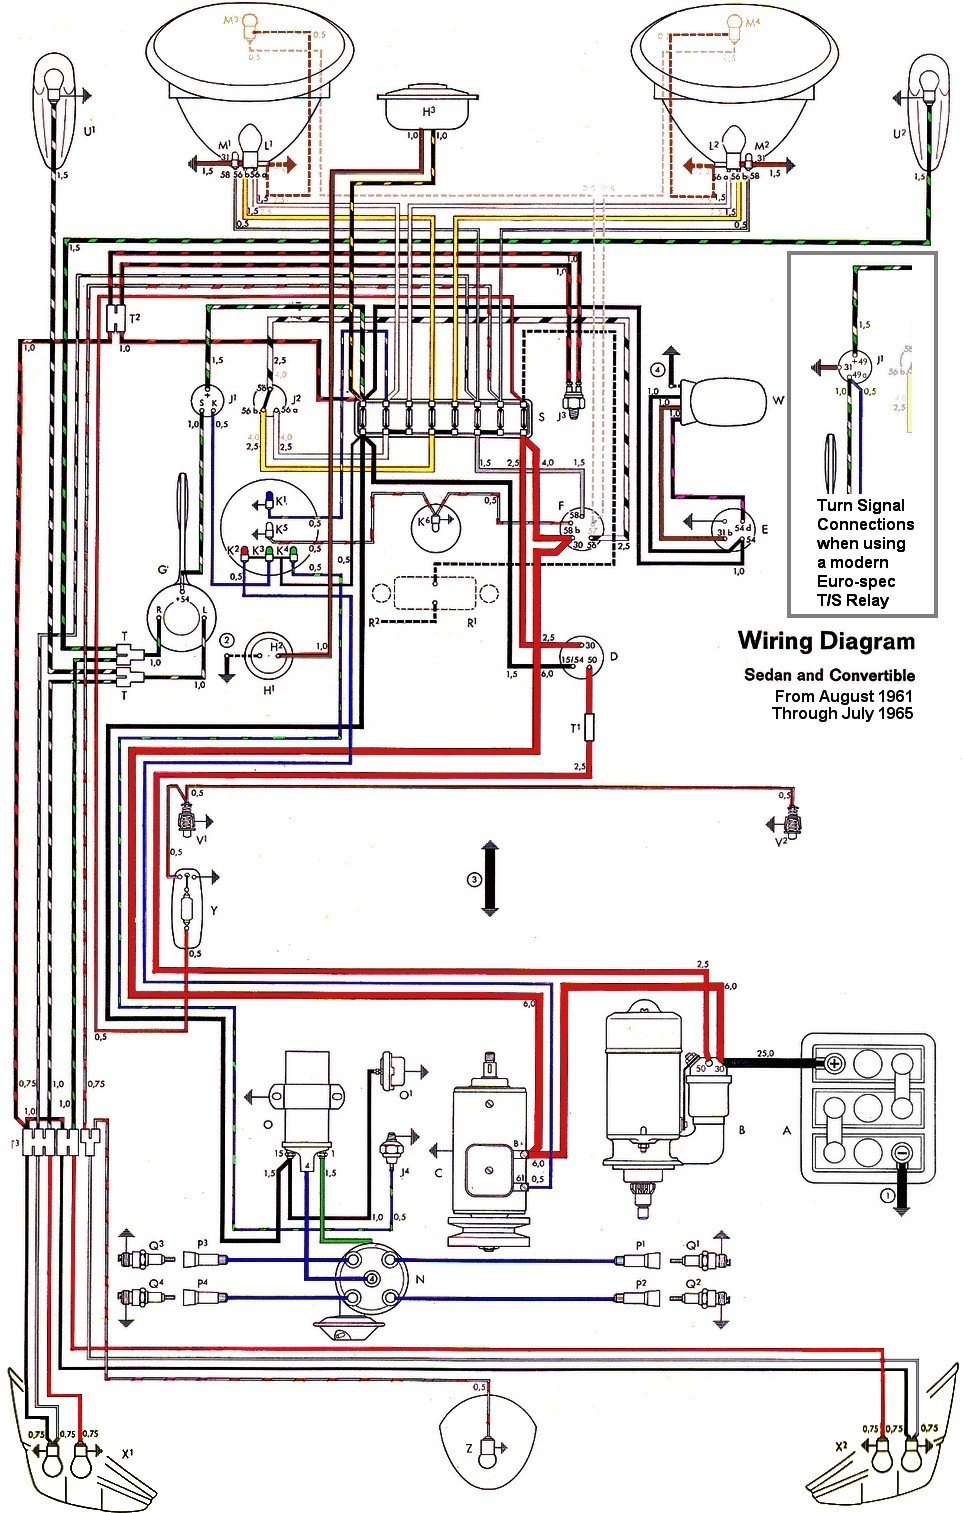 bug_62 65withinset wiring diagram vw beetle sedan and convertible 1961 1965 vw vw beach buggy wiring diagram at n-0.co